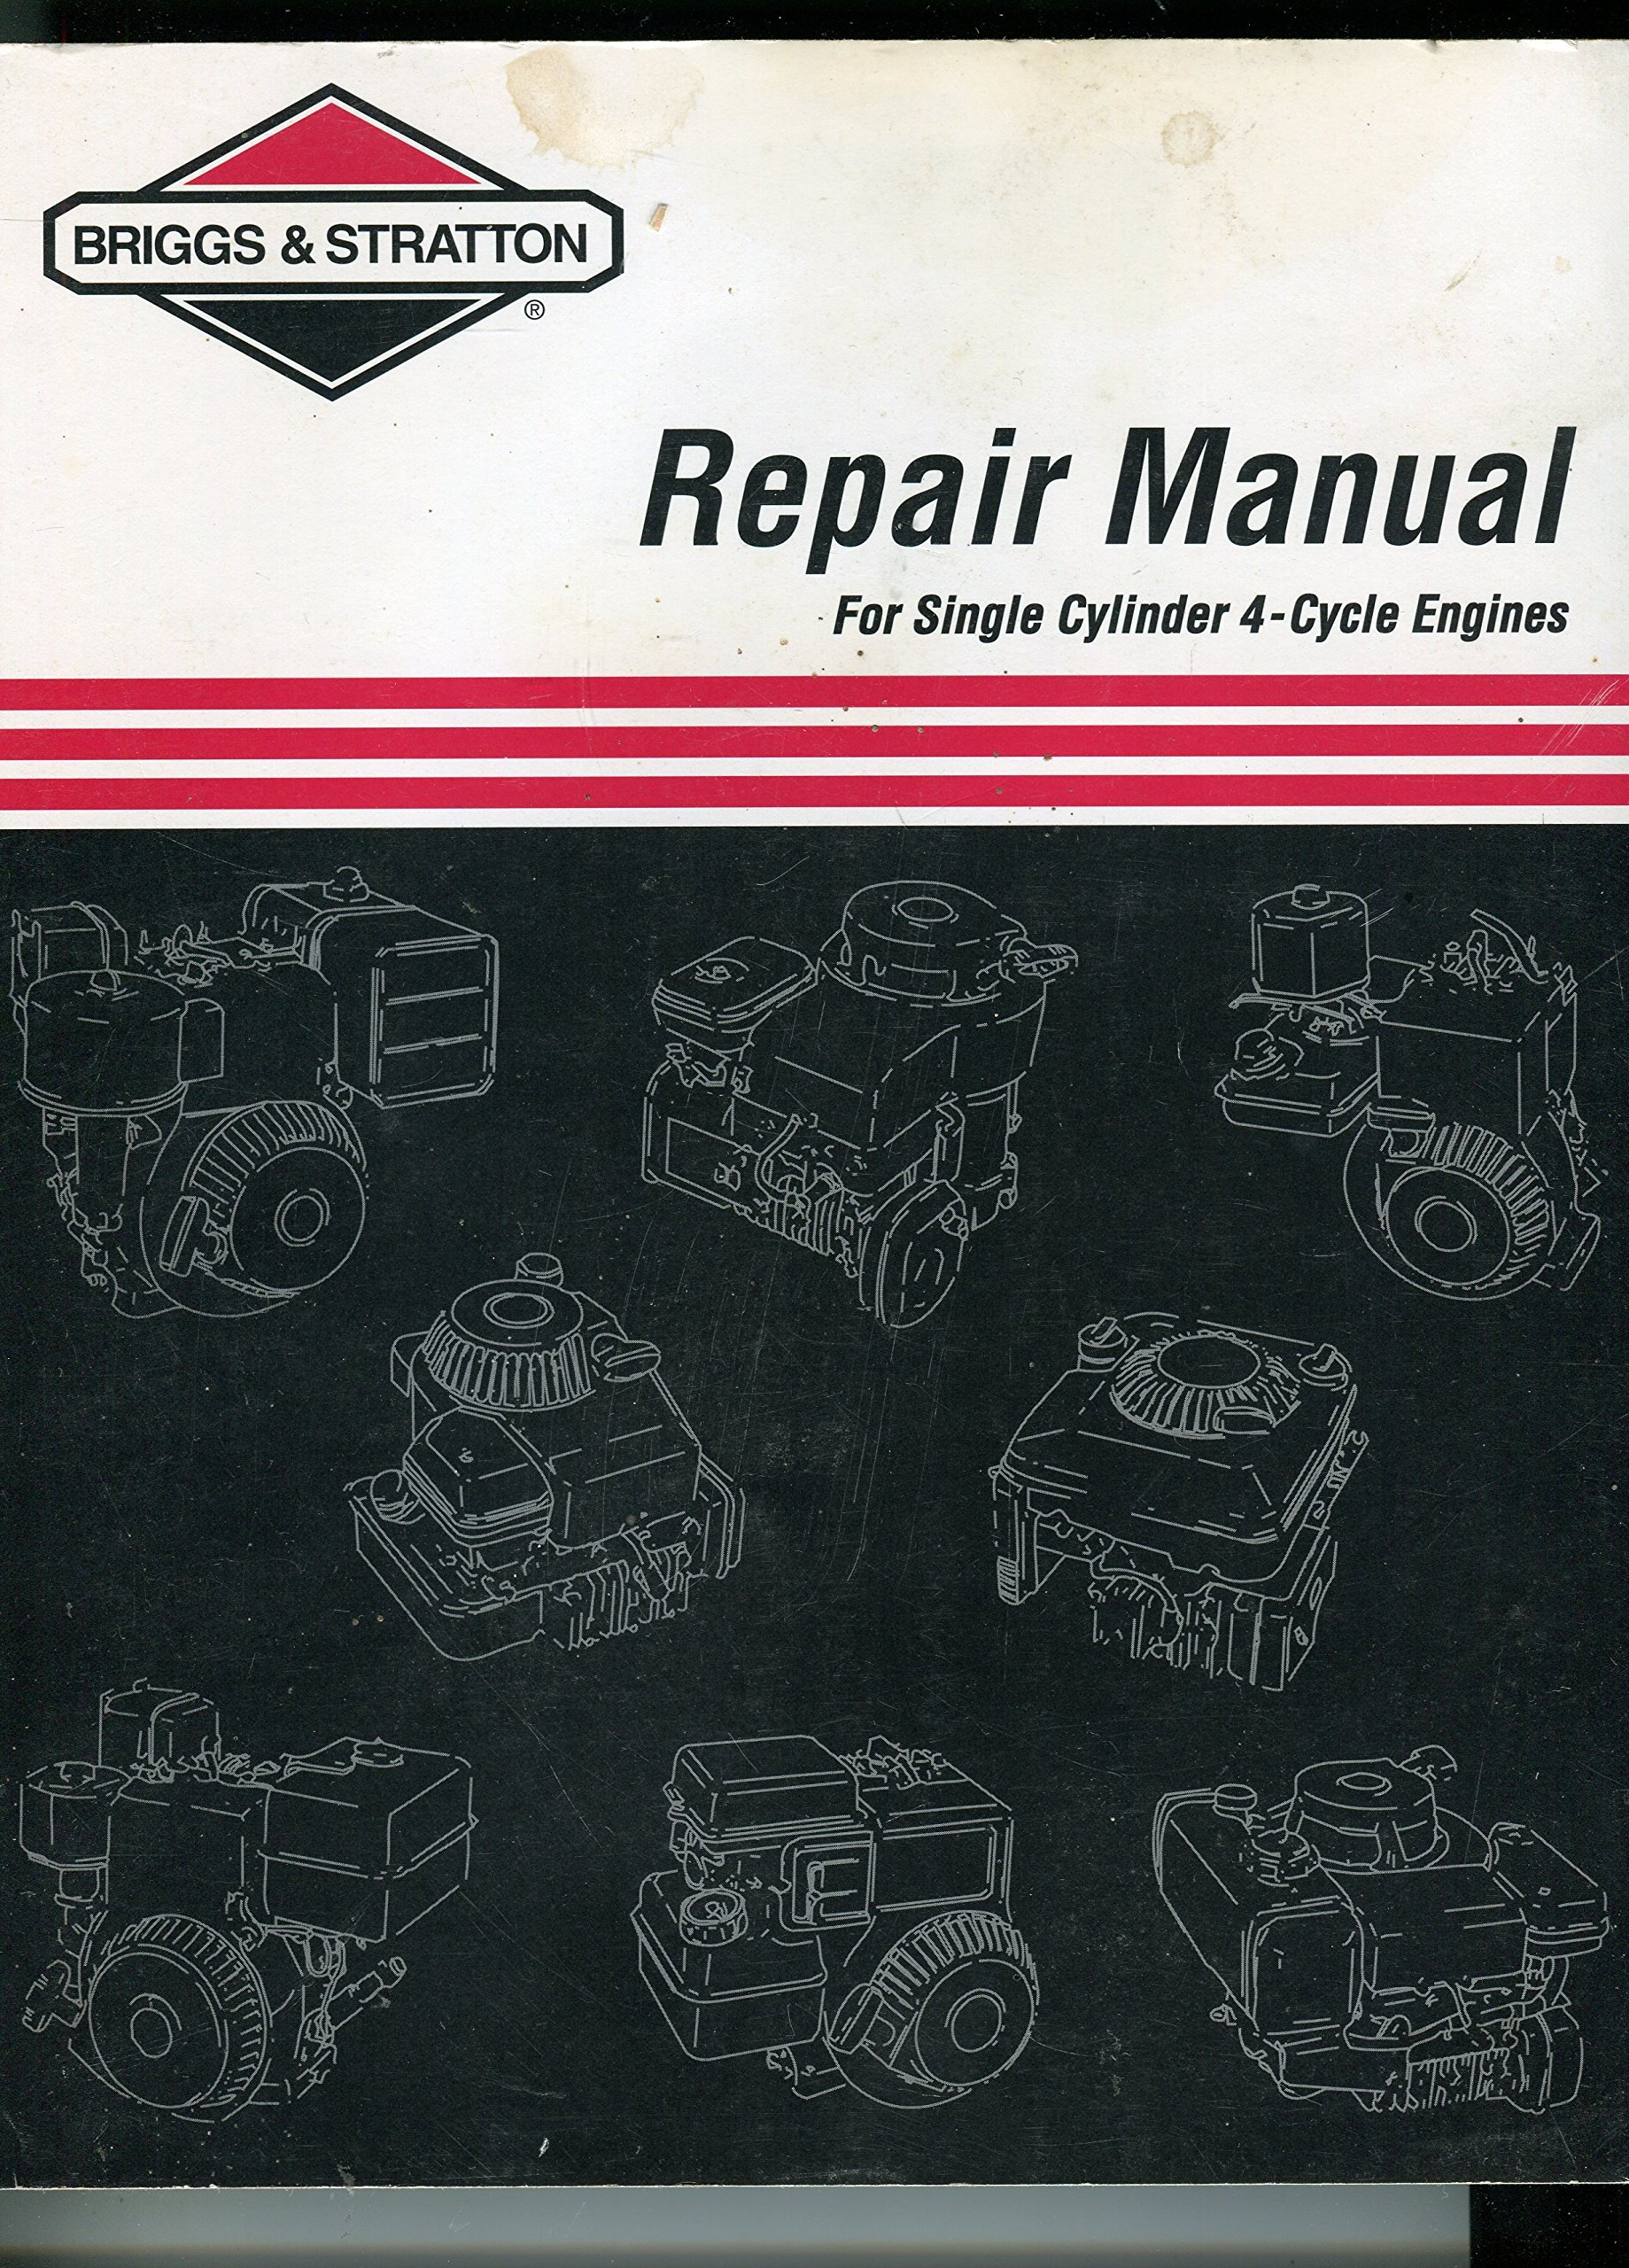 Repair Manual for Single Cylinder 4 Cycle Engines: Briggs & Stratton:  Amazon.com: Books